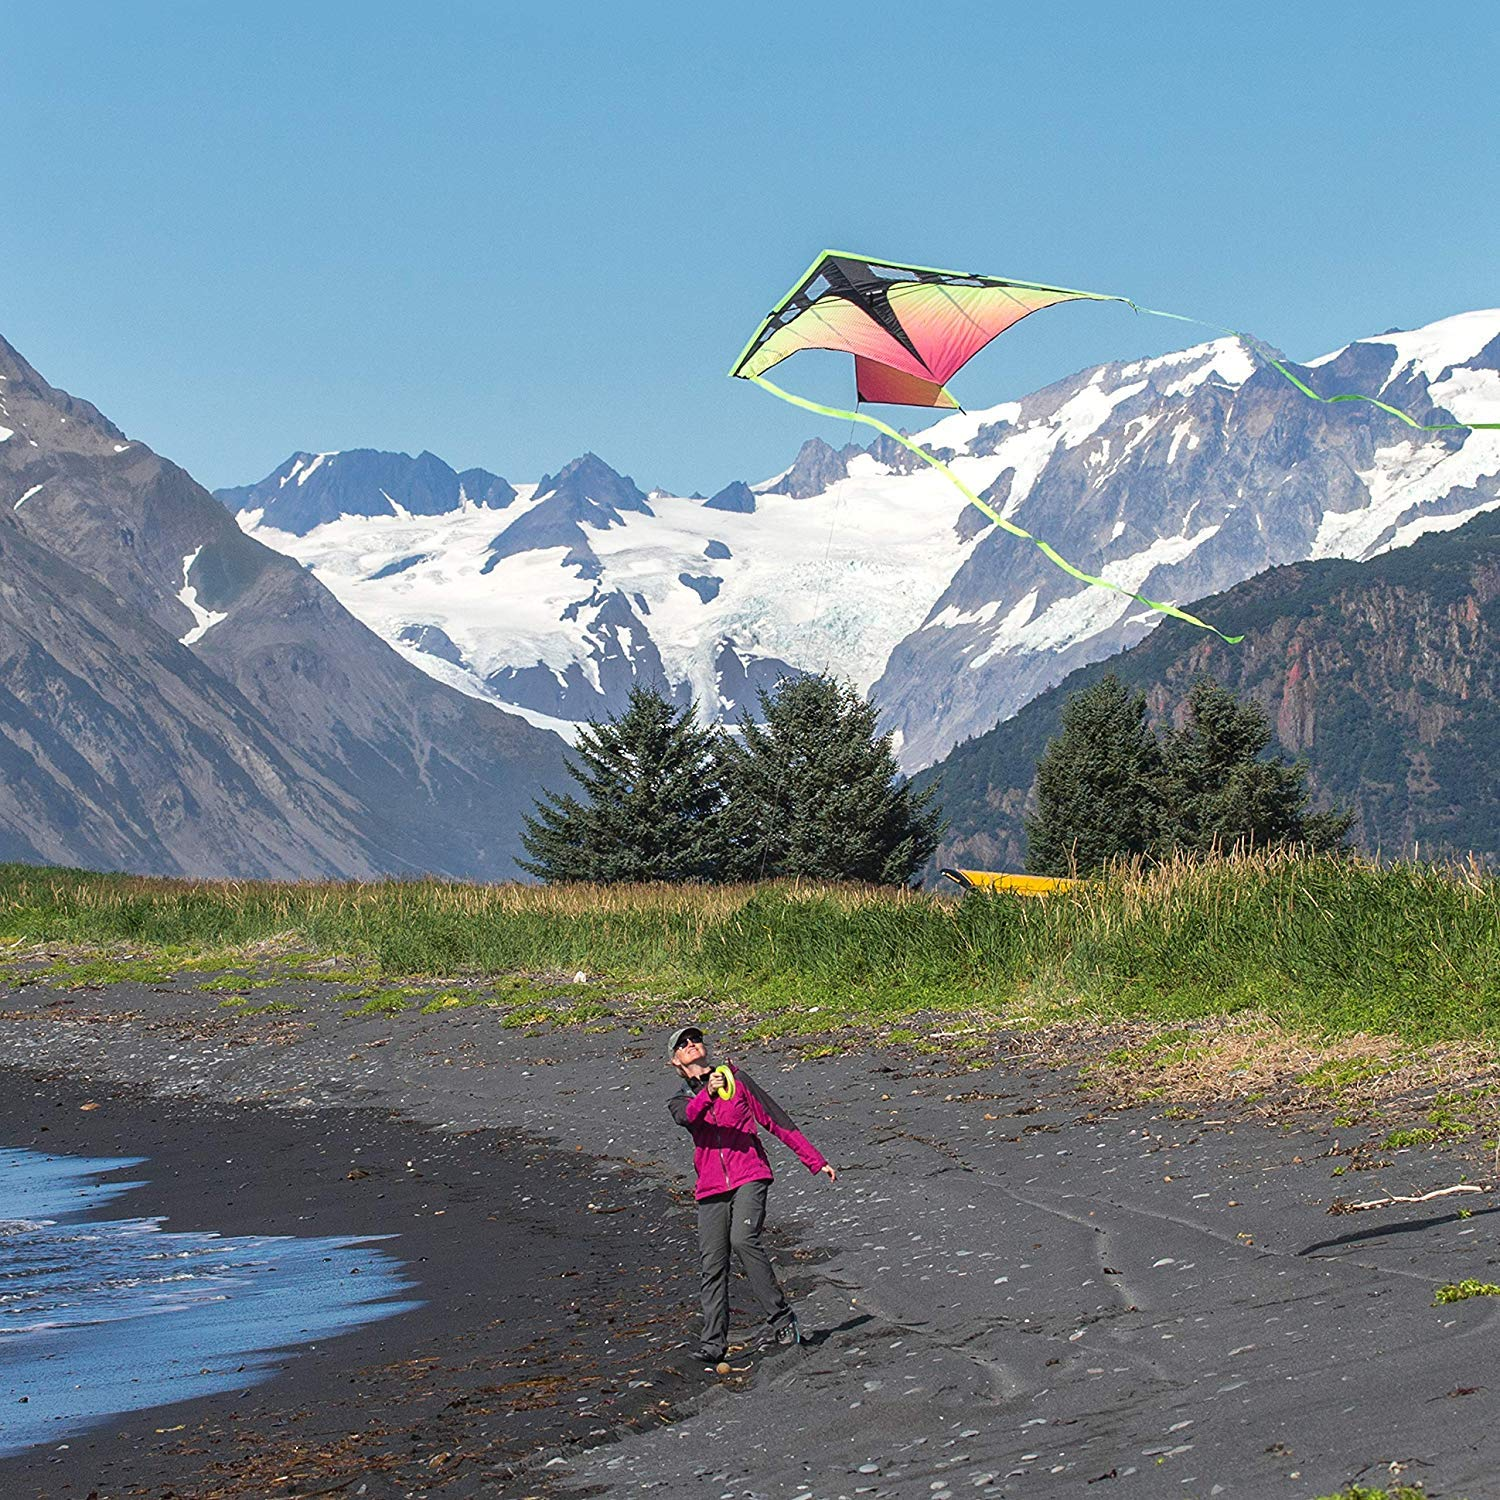 Prism Kite Technology Zenith 7 Infrared Single Line Kite, Ready to Fly with line, Winder and Travel Sleeve by Prism Kite Technology (Image #5)